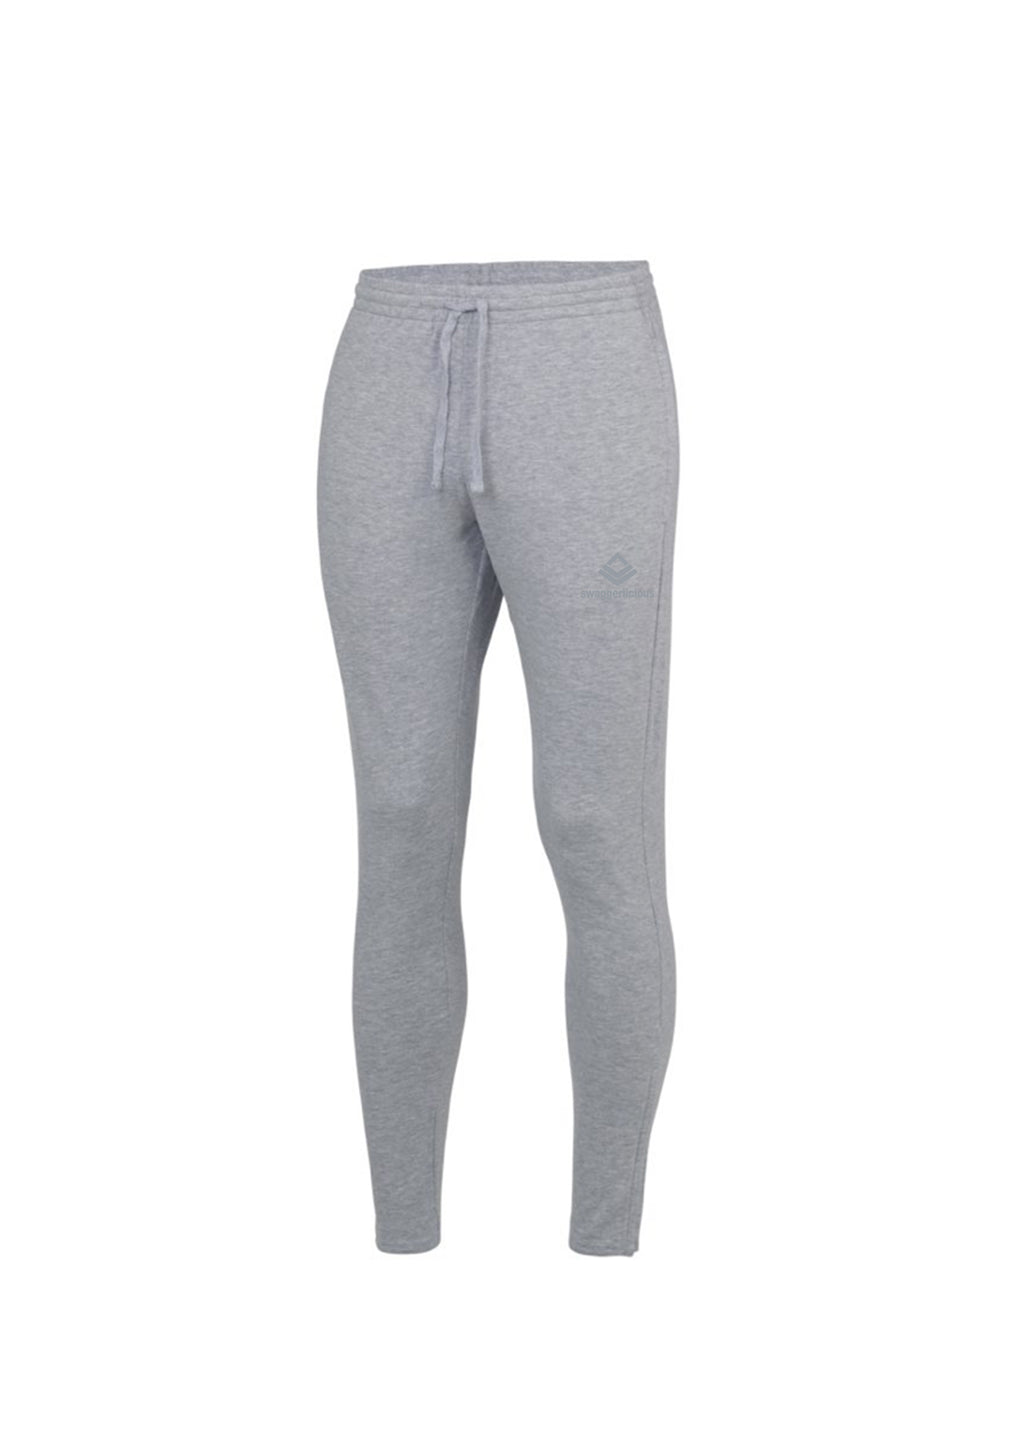 Swaggerlicious Sport Grey Cool Jogging Pants with Silver Logo